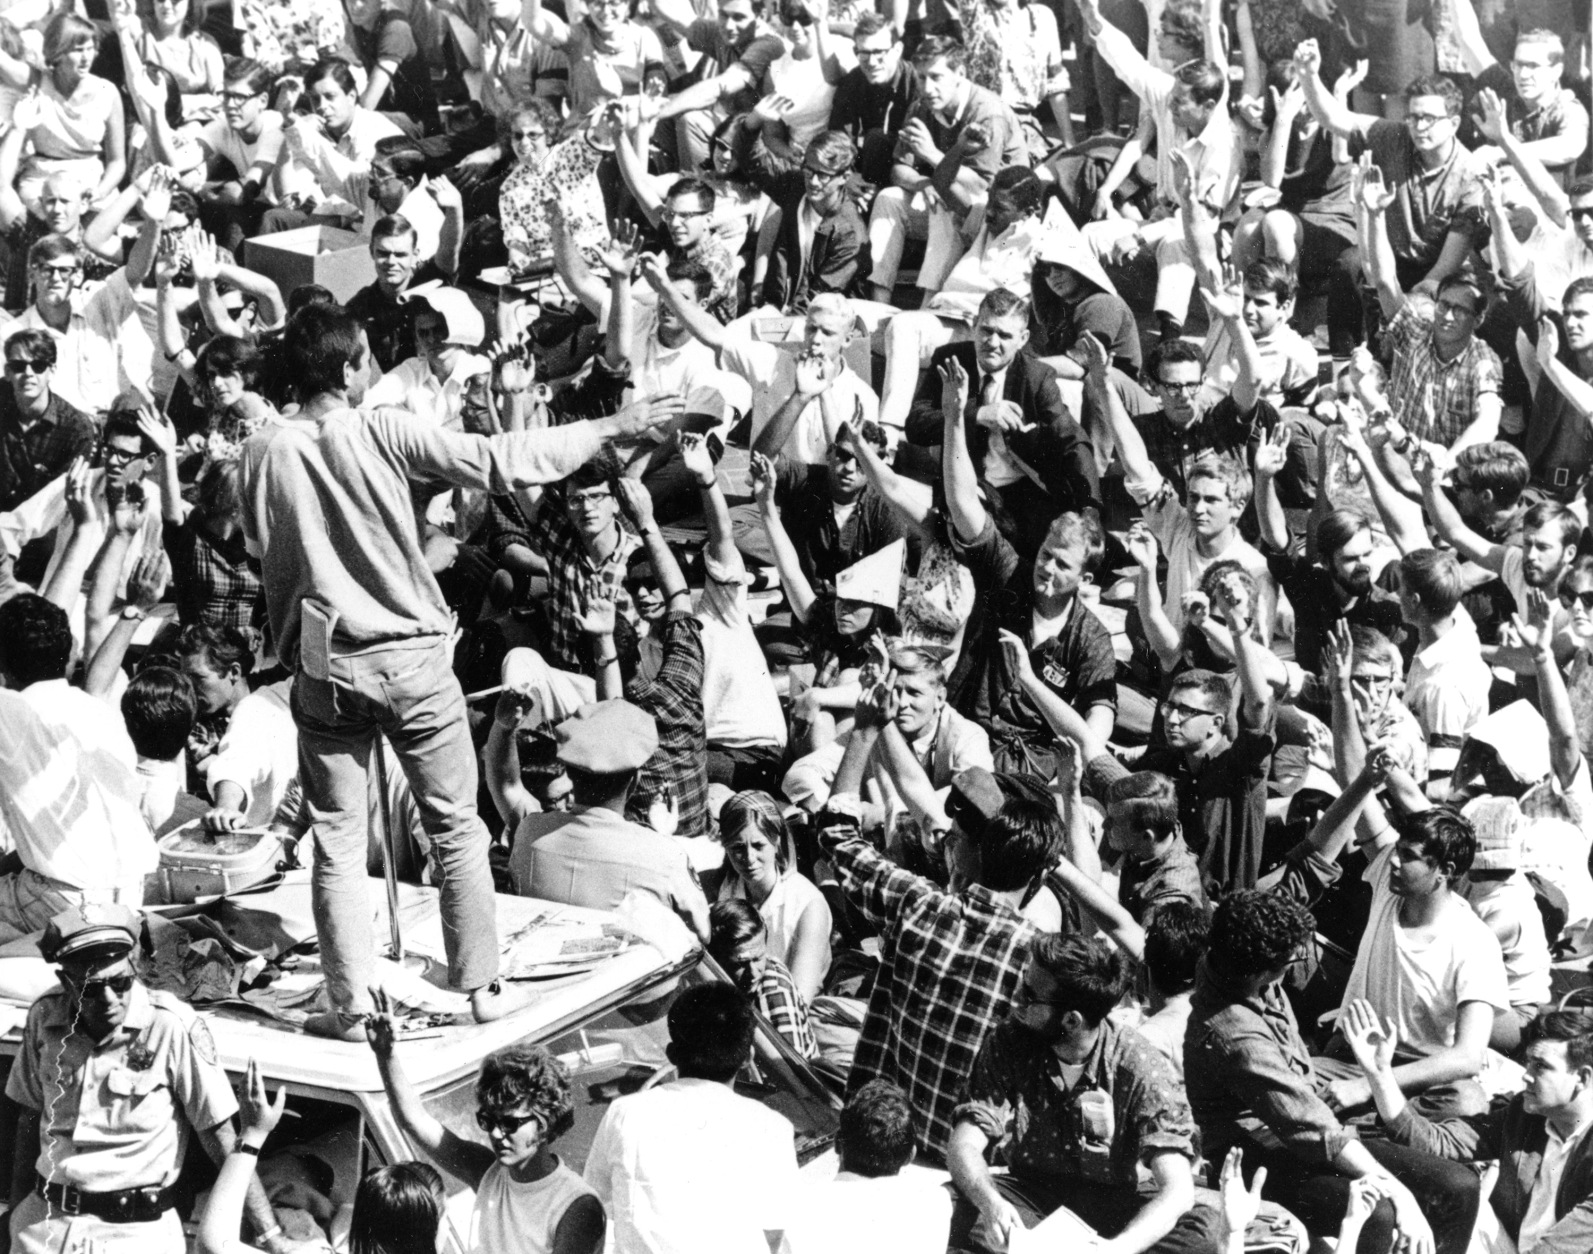 FILE - In this Oct. 2, 1964 file photo, standing atop the crushed roof of a campus police car, a University of California student asks Cal students to identify themselves during third day of Free Speech Movement demonstrations in Berkeley, Calif. One student has been arrested and confined in the police car which is surrounded by the demonstrators. The fall of 2014 marks the 50th anniversary of the Free Speech Movement, a protest that only lasted for three months but set the stage for the turbulent 1960s. (AP Photo, File)